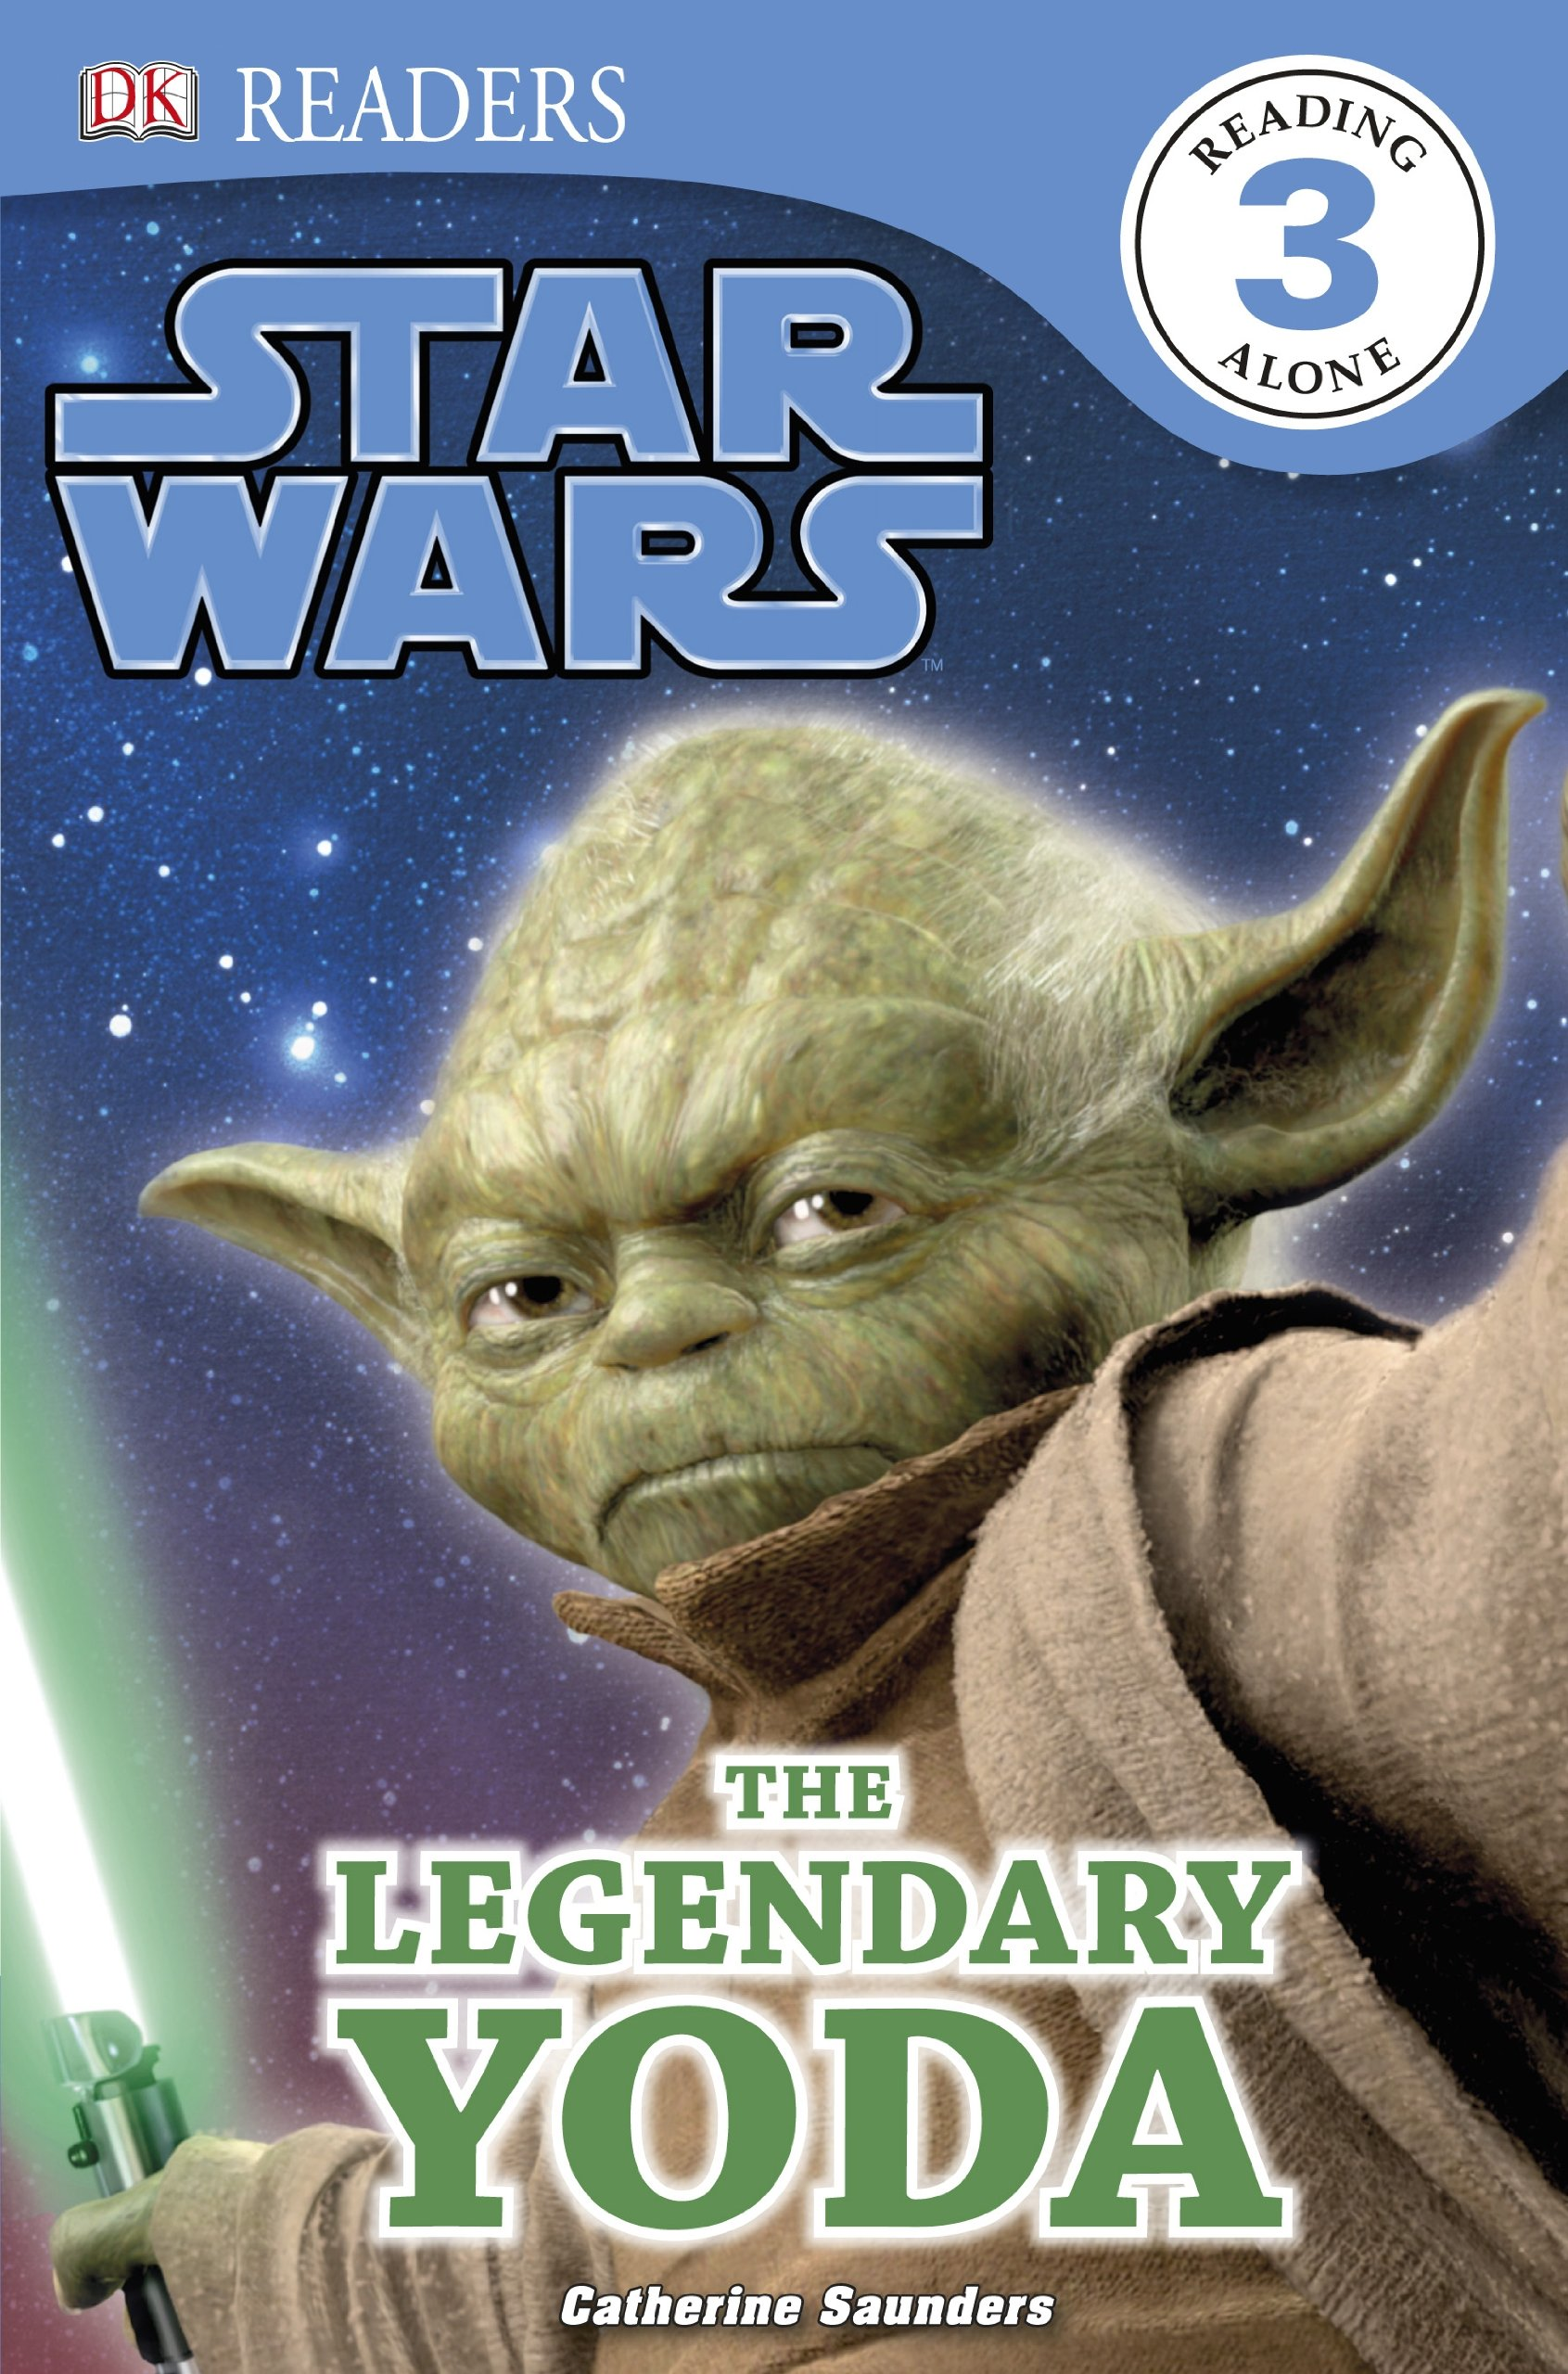 Star Wars: The Legendary Yoda